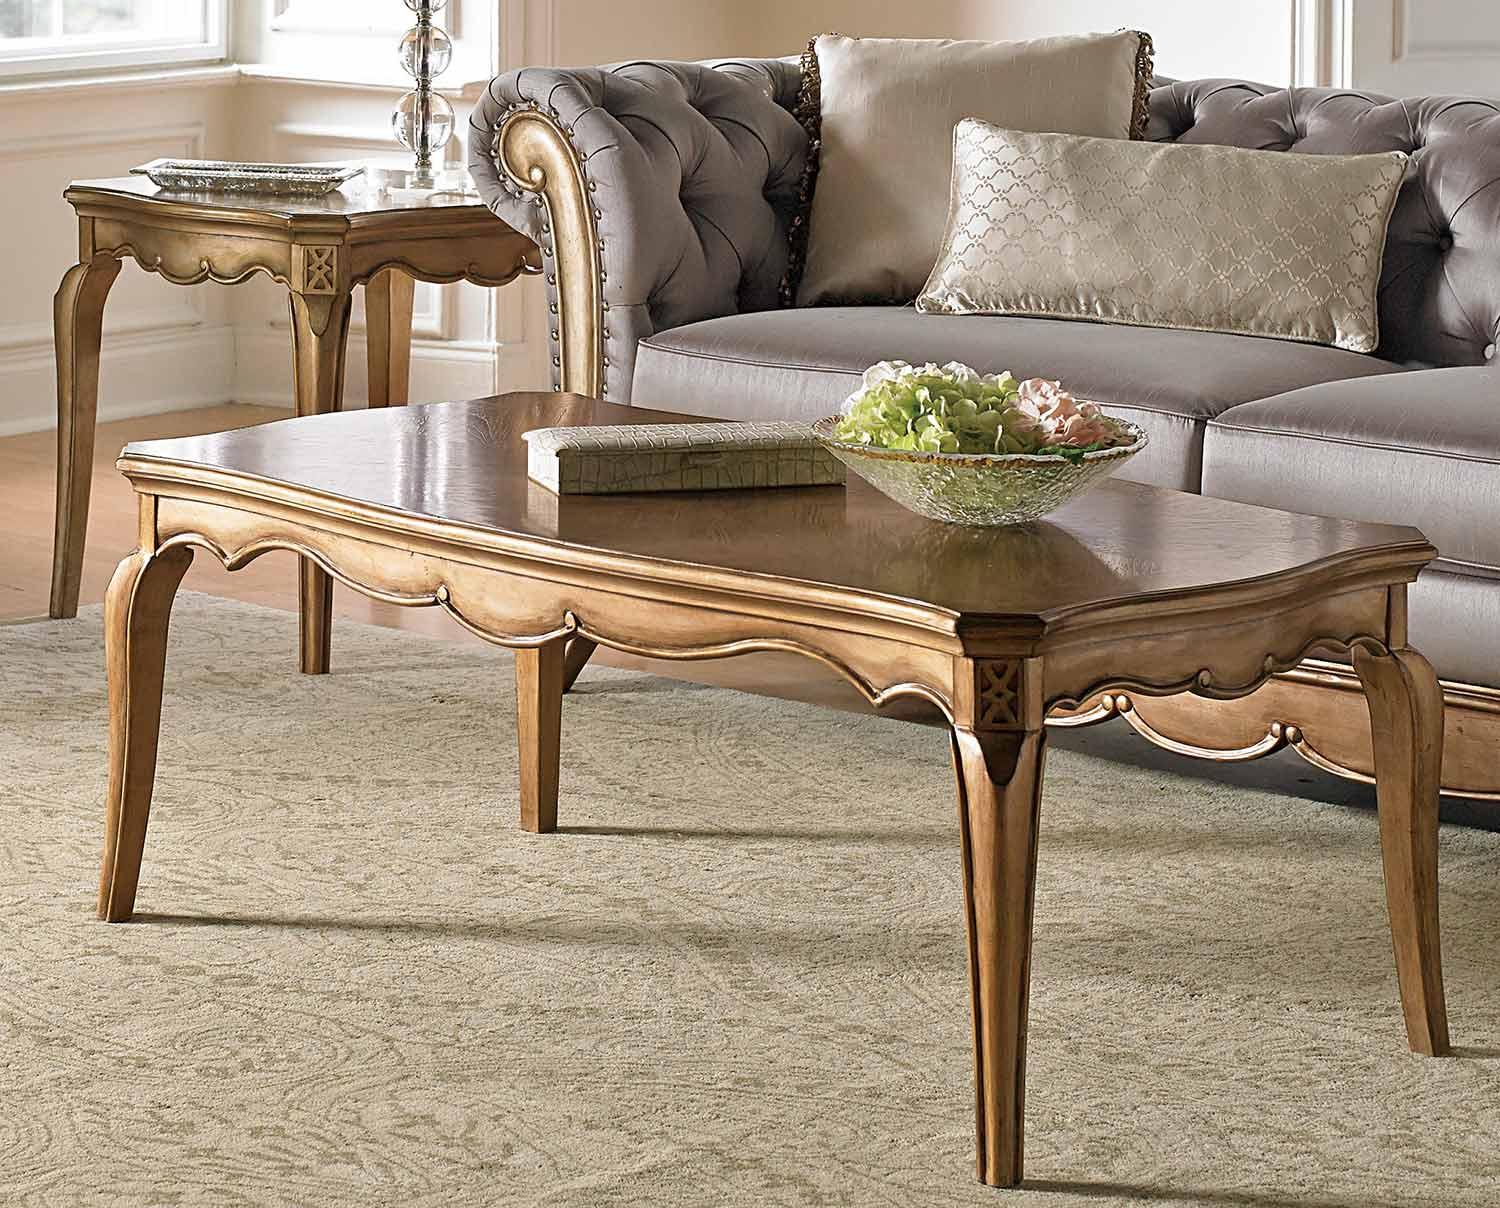 Homelegance Chambord Cocktail/Coffee Table - Champagne Gold